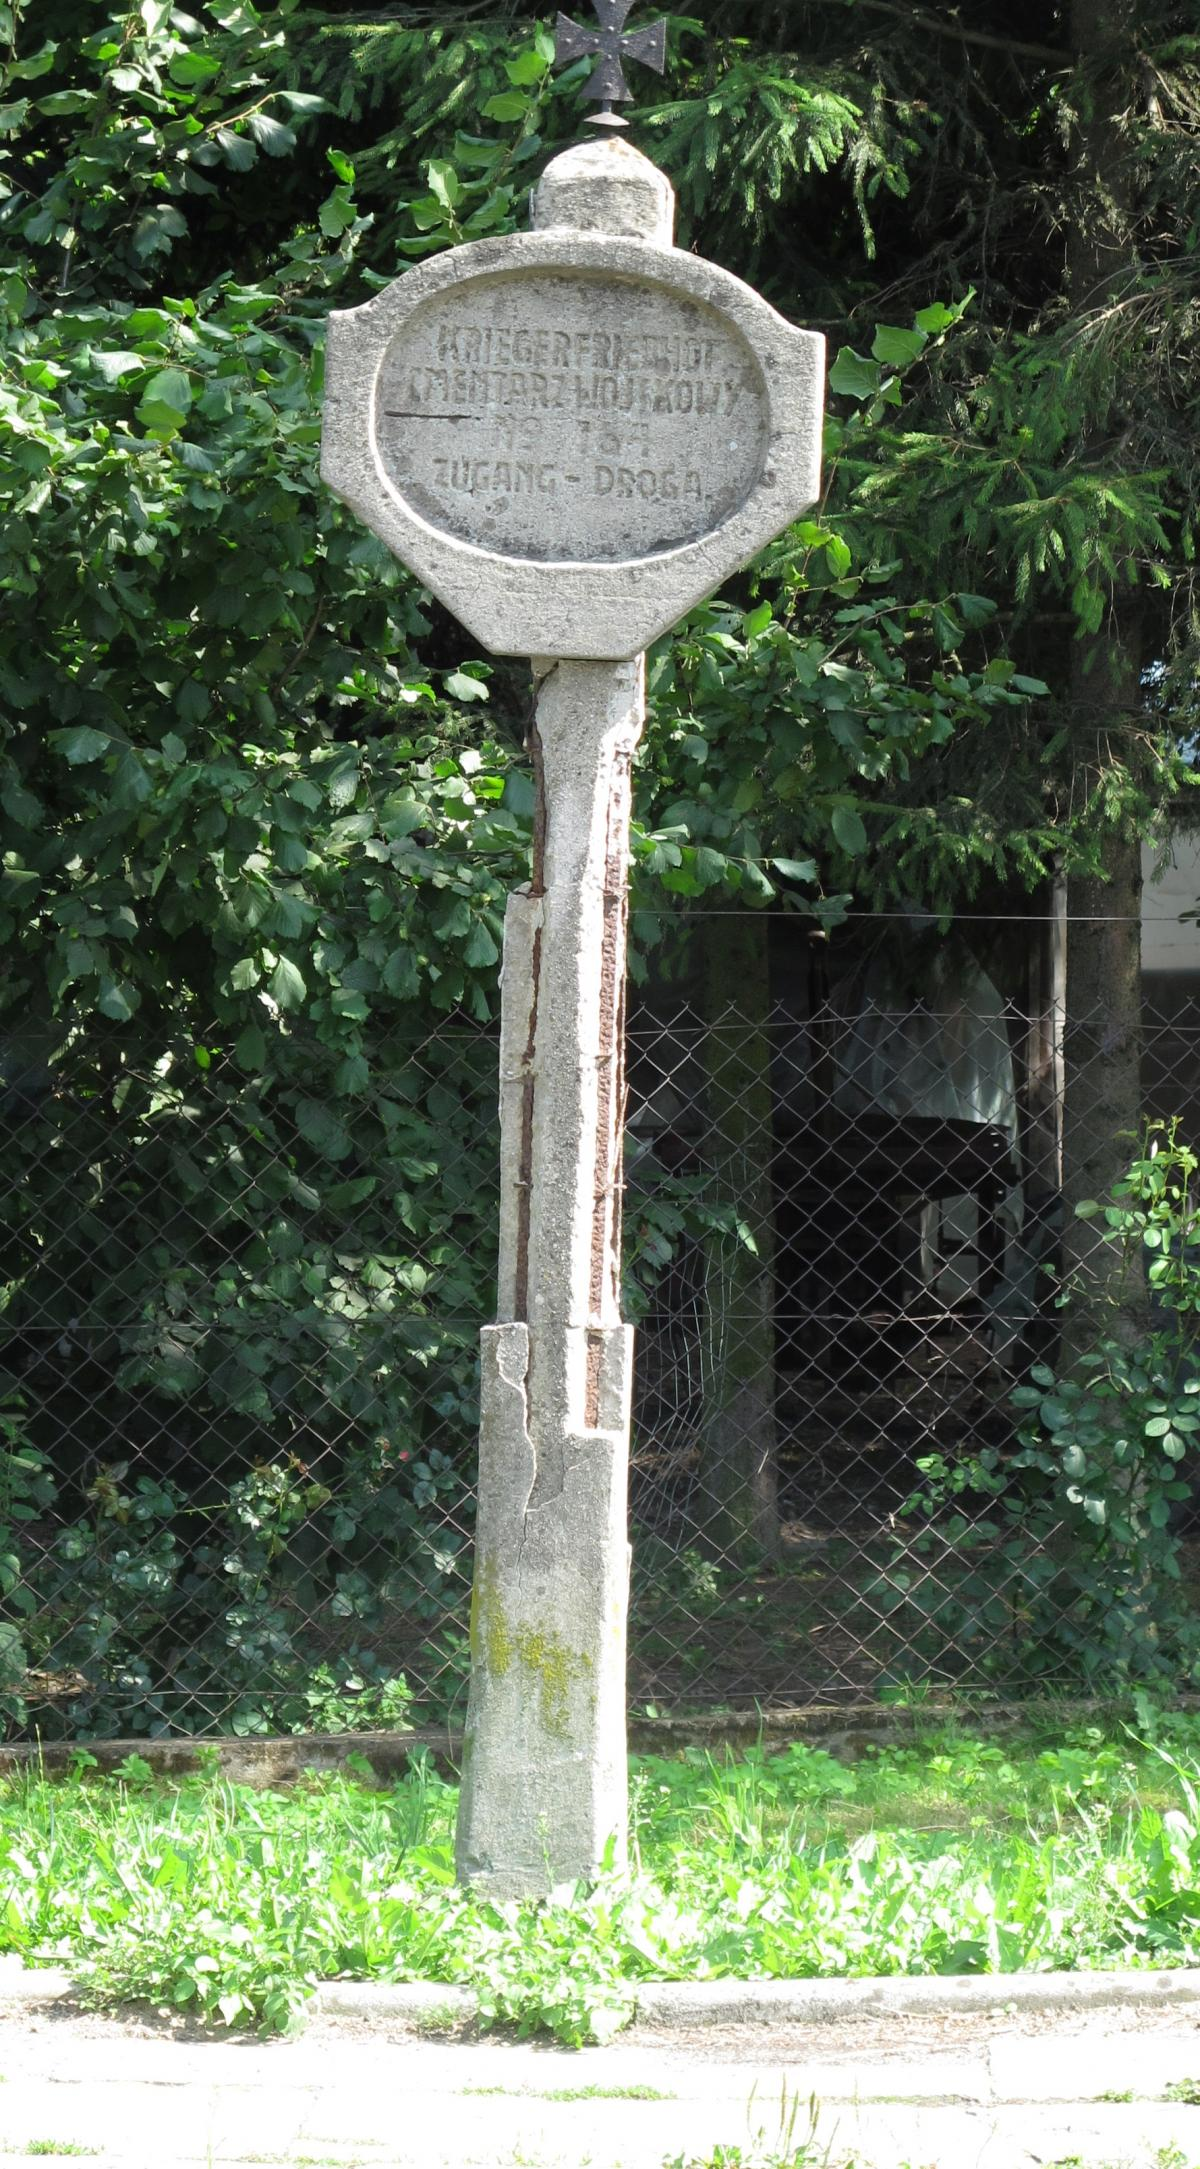 Wikipedia, Bilingual Polish-German signs in Poland, Cemetery signs, Cross pattée, Photographs taken